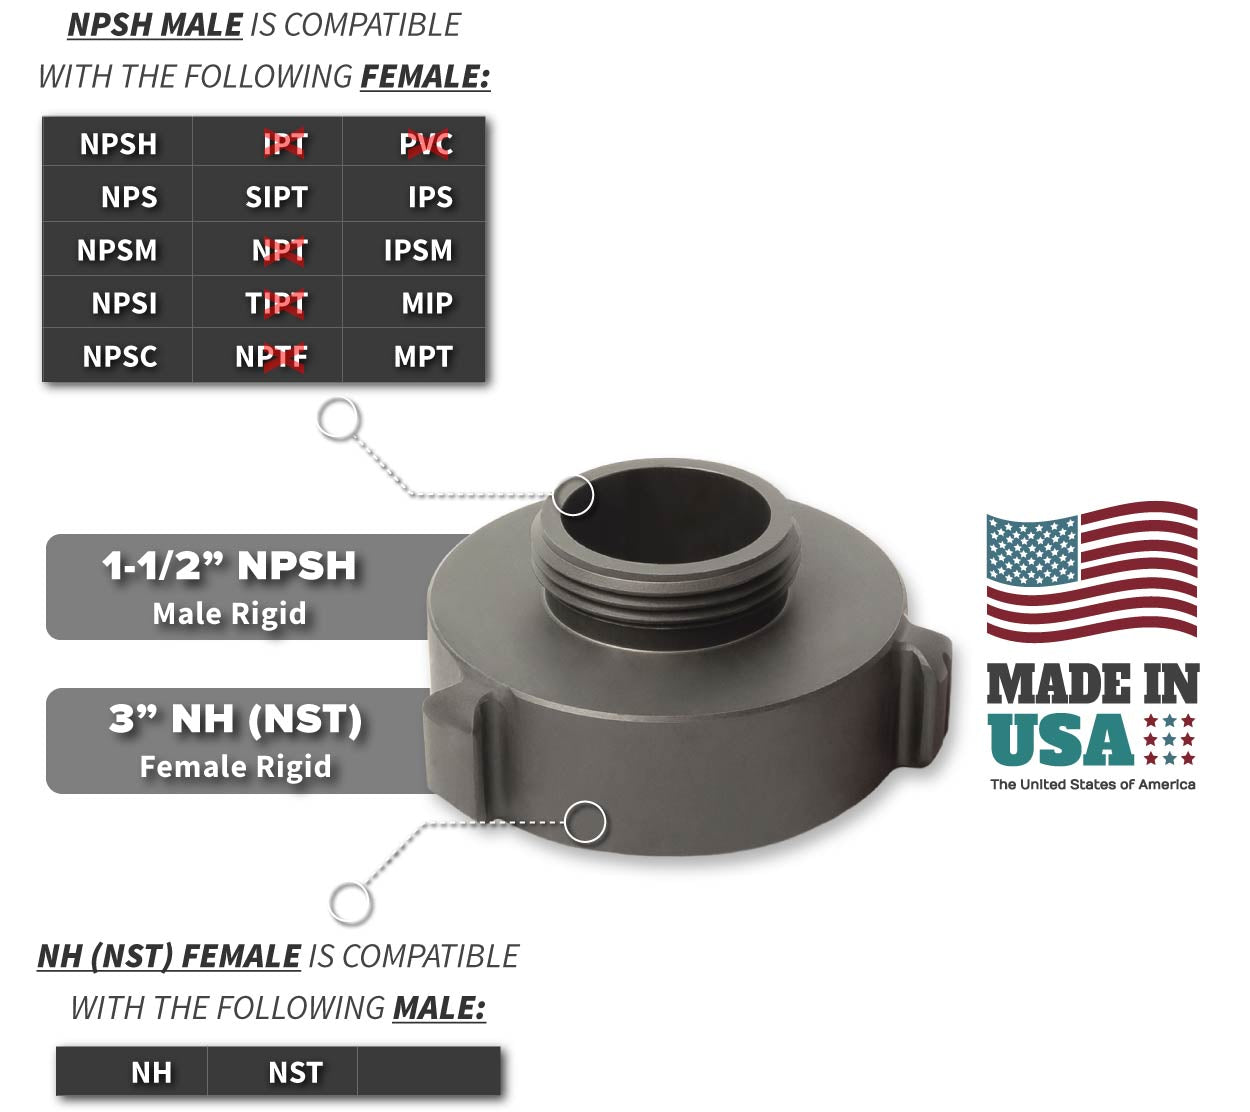 3 Inch NH-NST Female x 1.5 Inch NPSH Male Compatibility Thread Chart